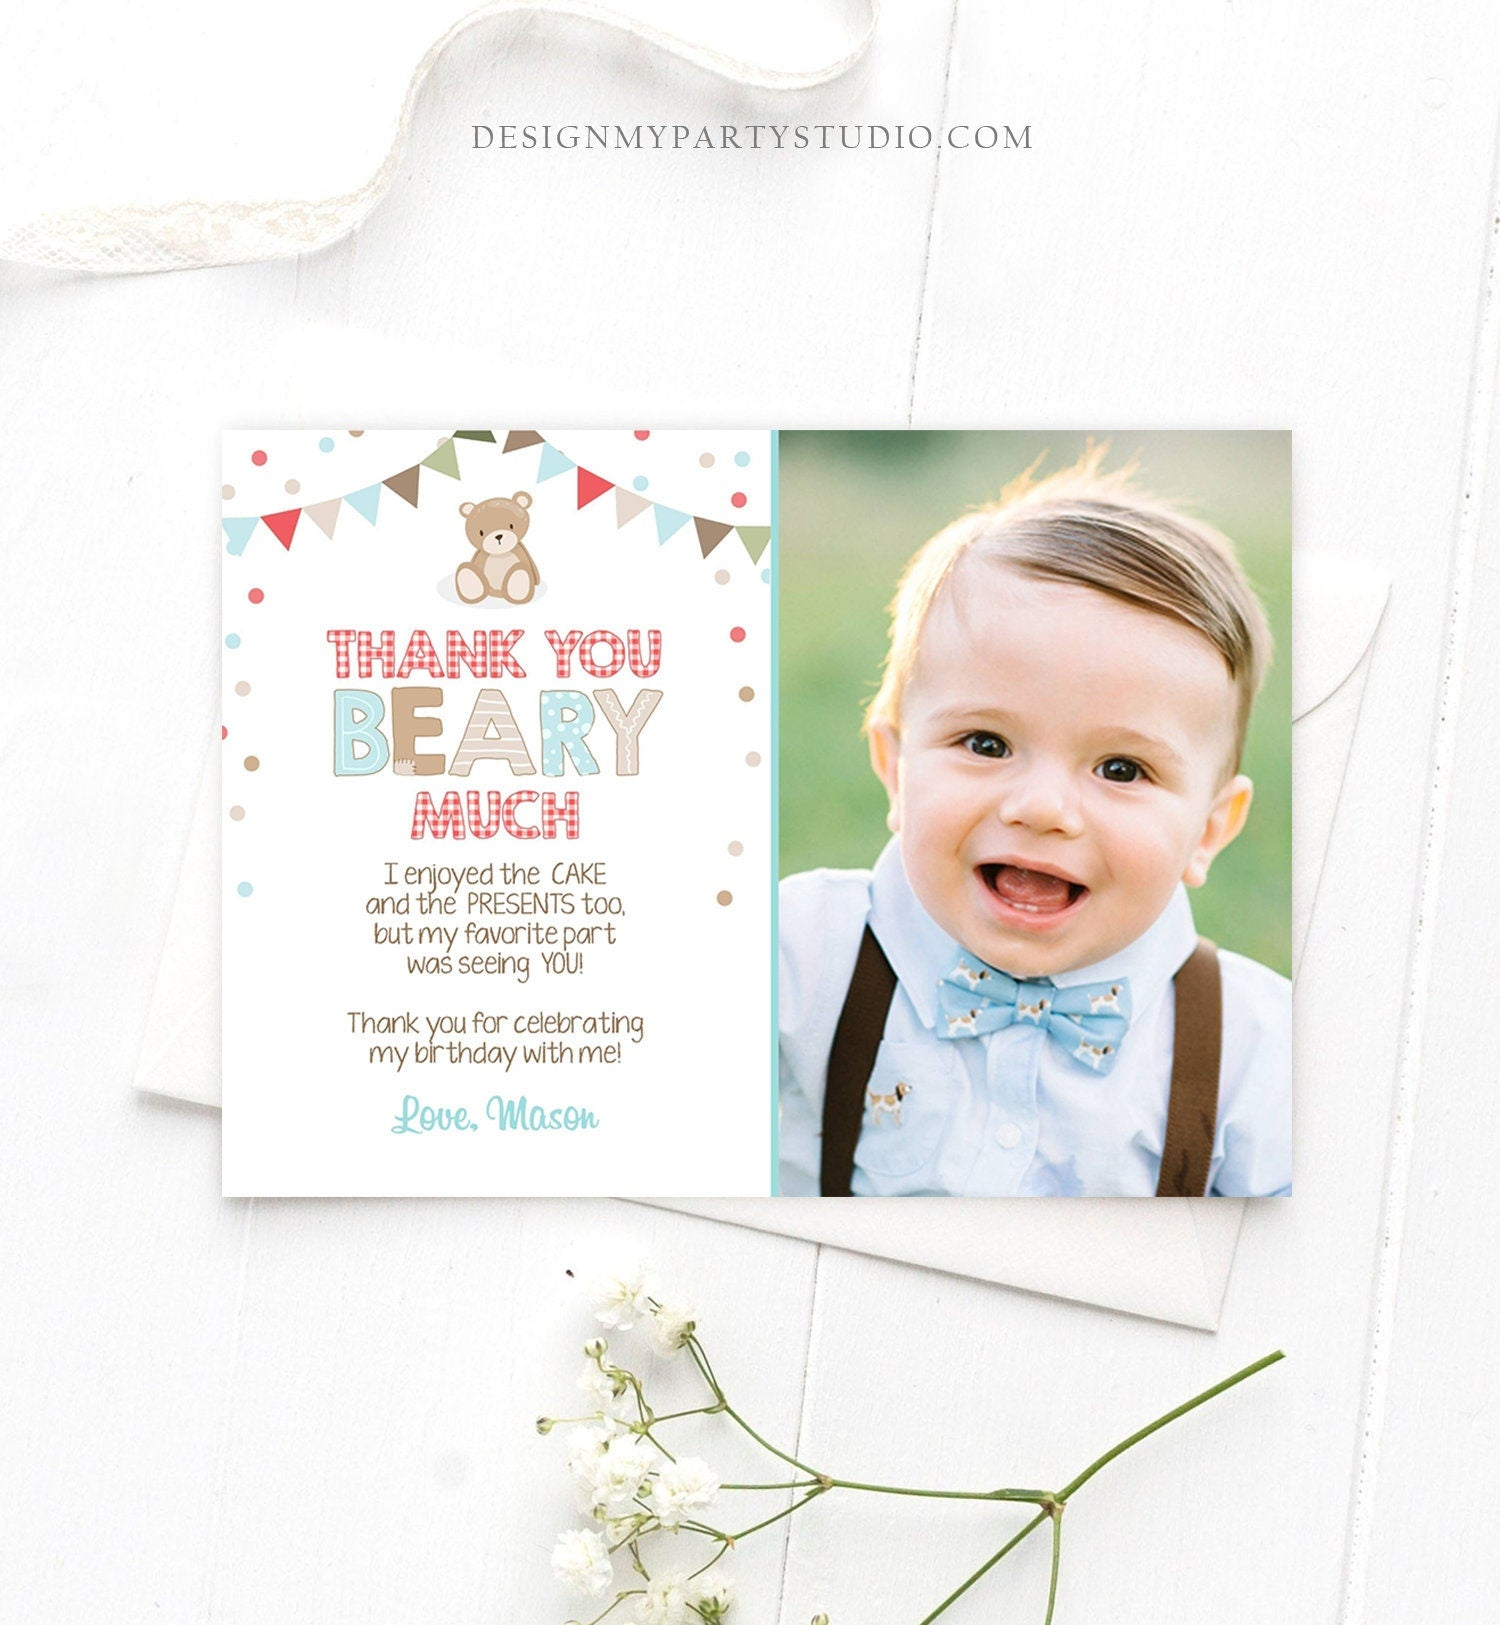 Editable Thank You Card Teddy Bear Birthday Picnic Beary Much Boy Blue Woodland Download Printable Thank You Template Digital Corjl 0100